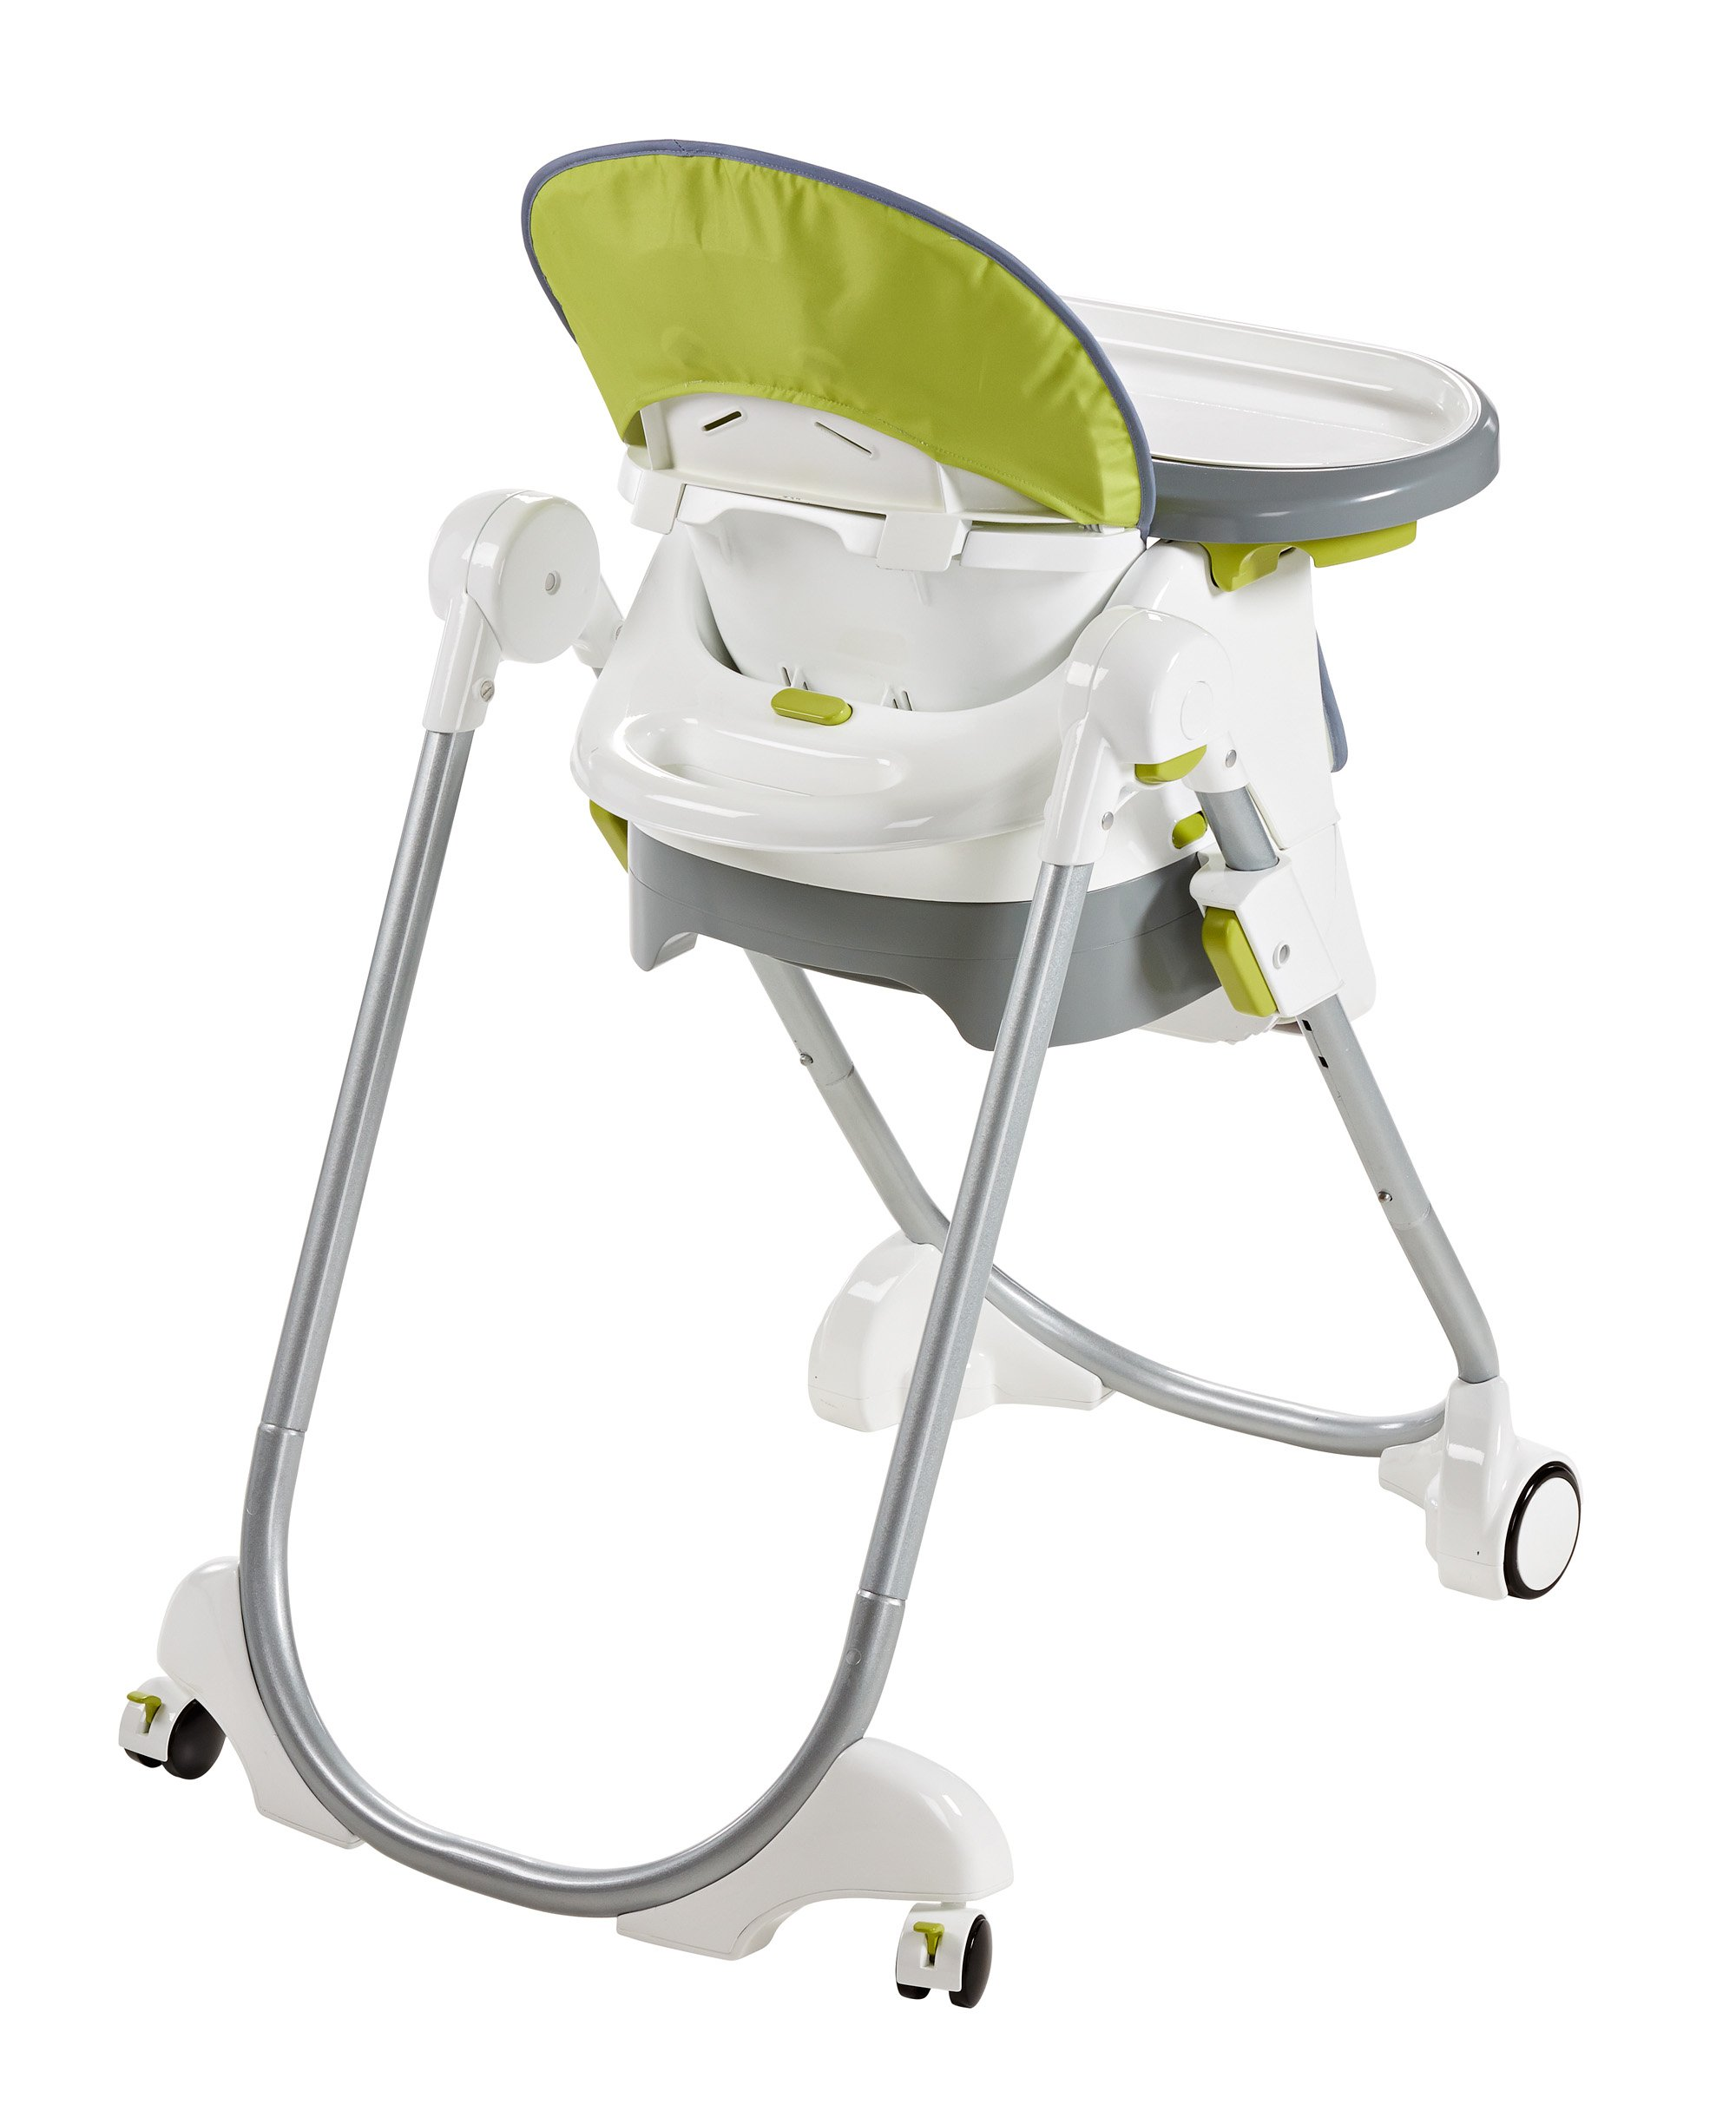 Fisher-Price 4-in-1 Total Clean High Chair, Green/Gray by Fisher-Price (Image #8)